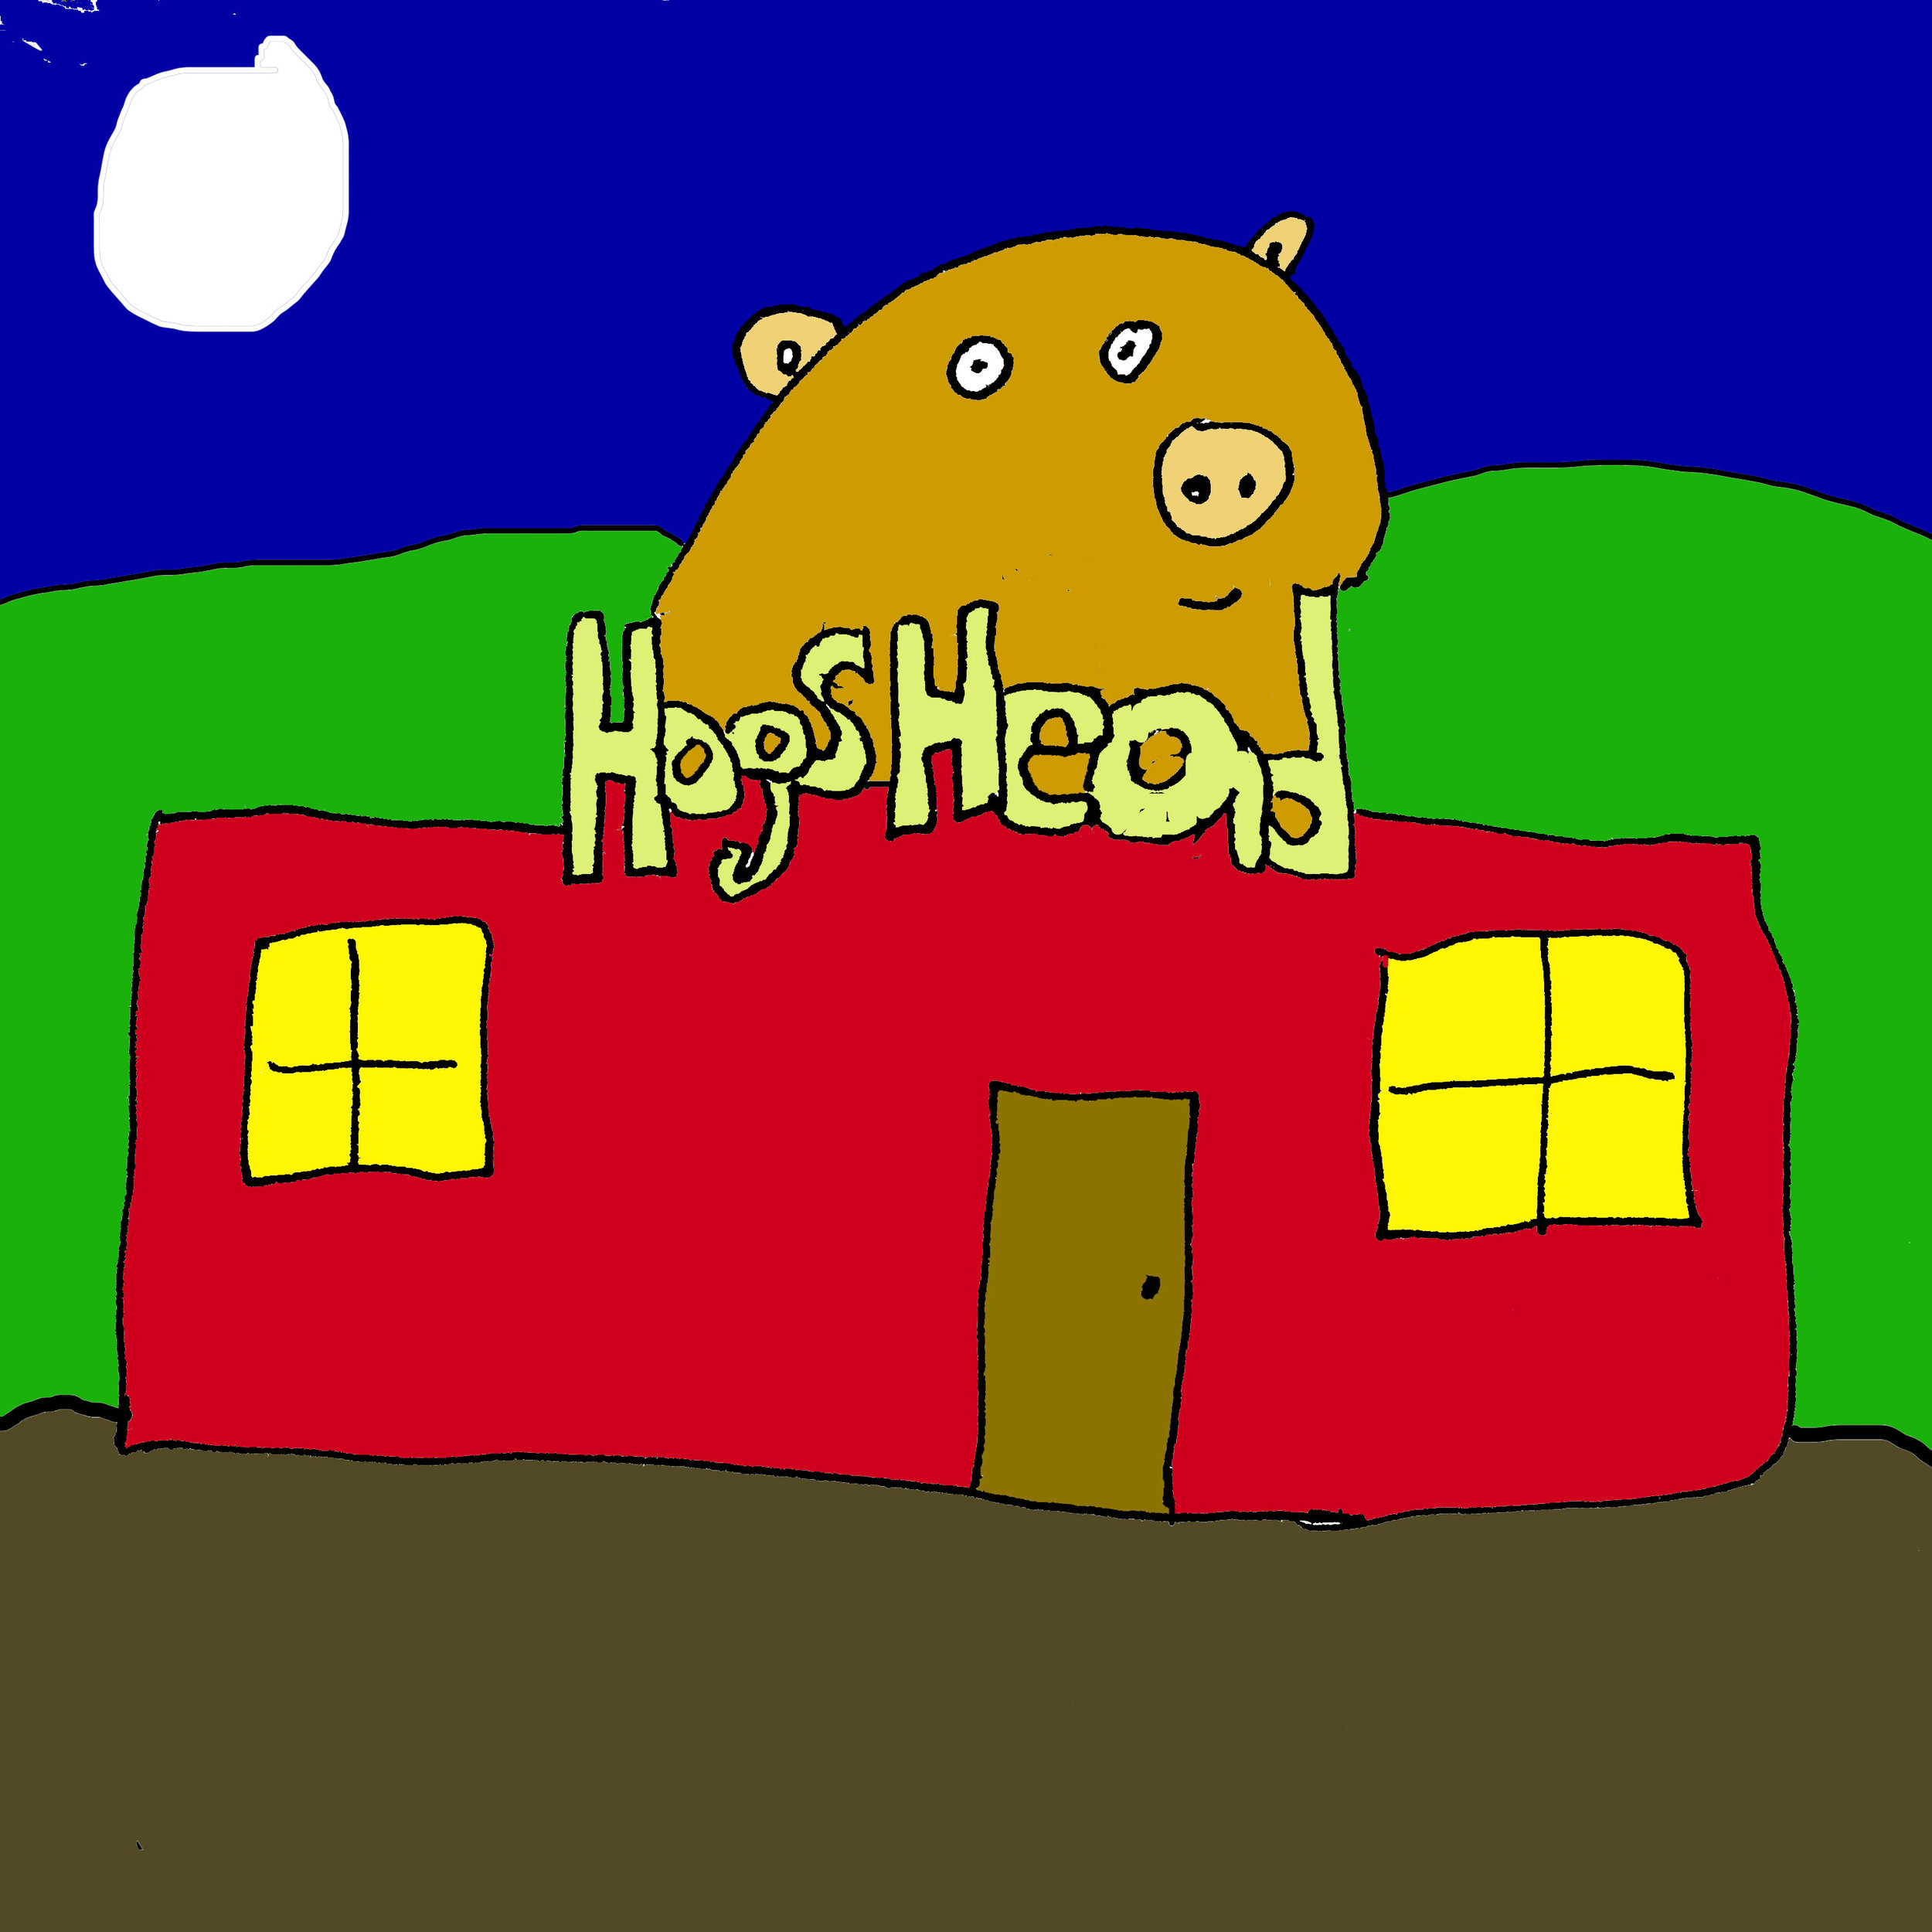 The sign for the Hog's Head Pub